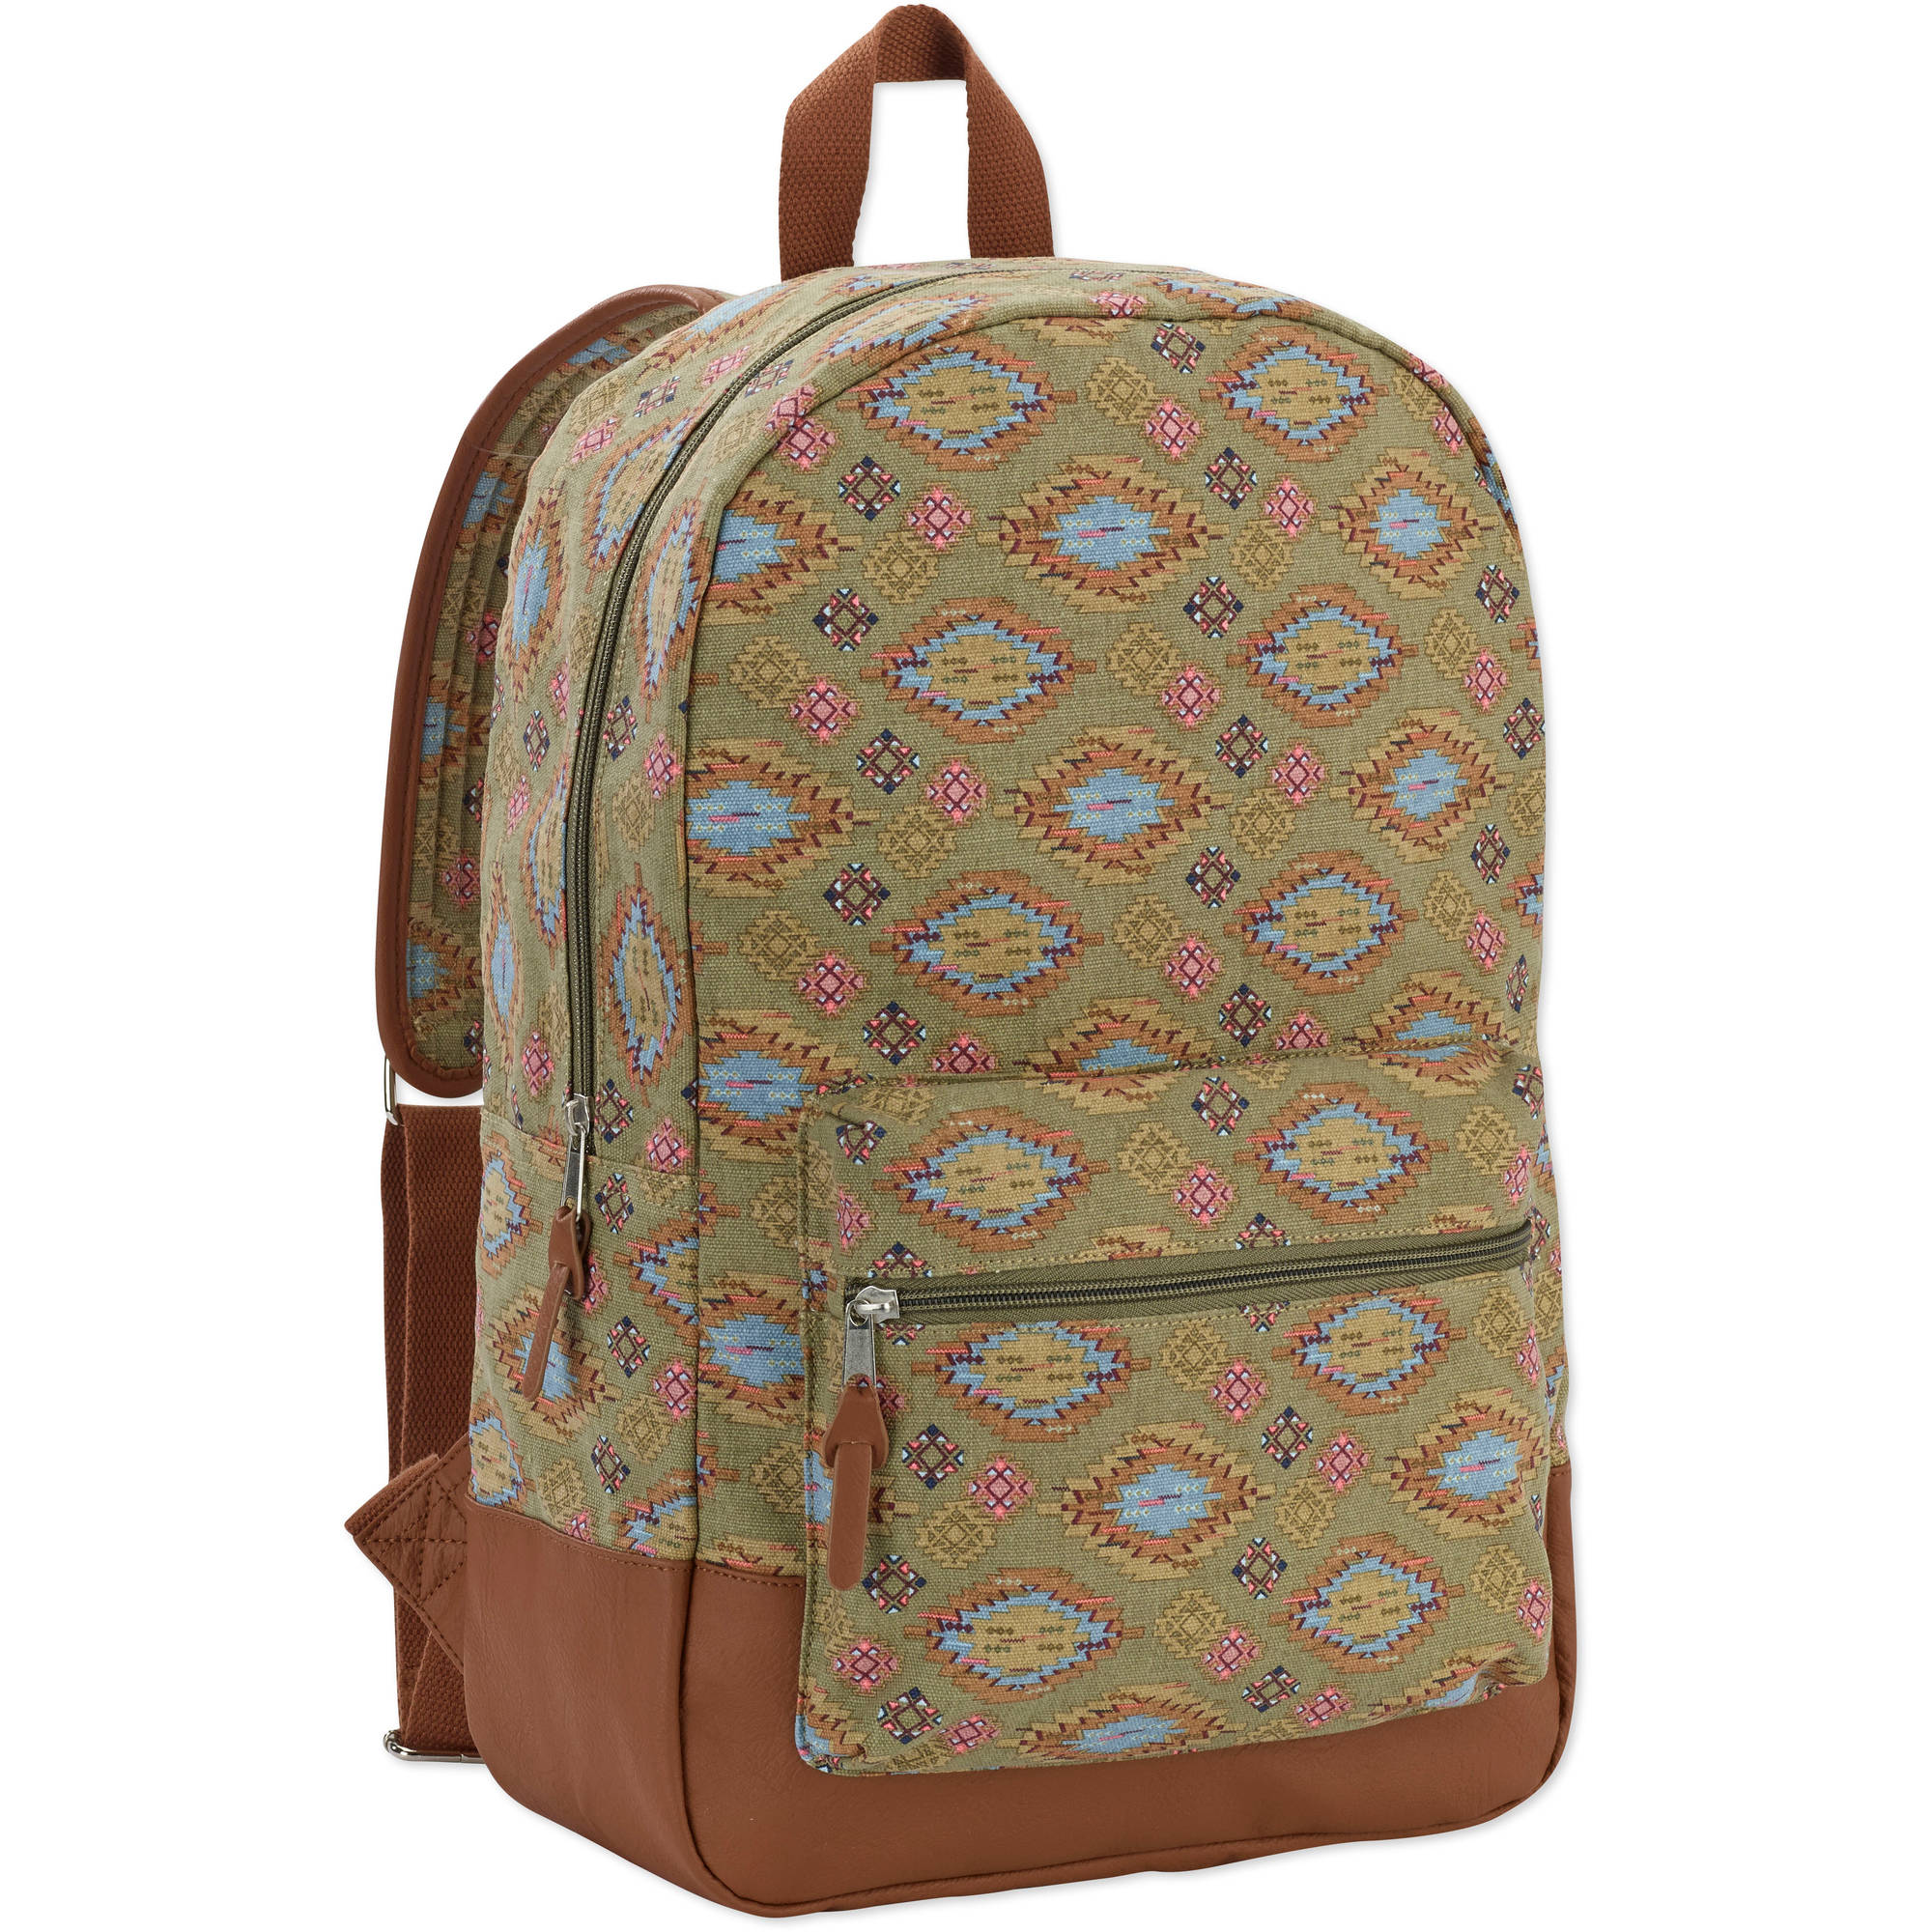 "No Boundaries 18"" Printed Canvas  Dome Backpack"